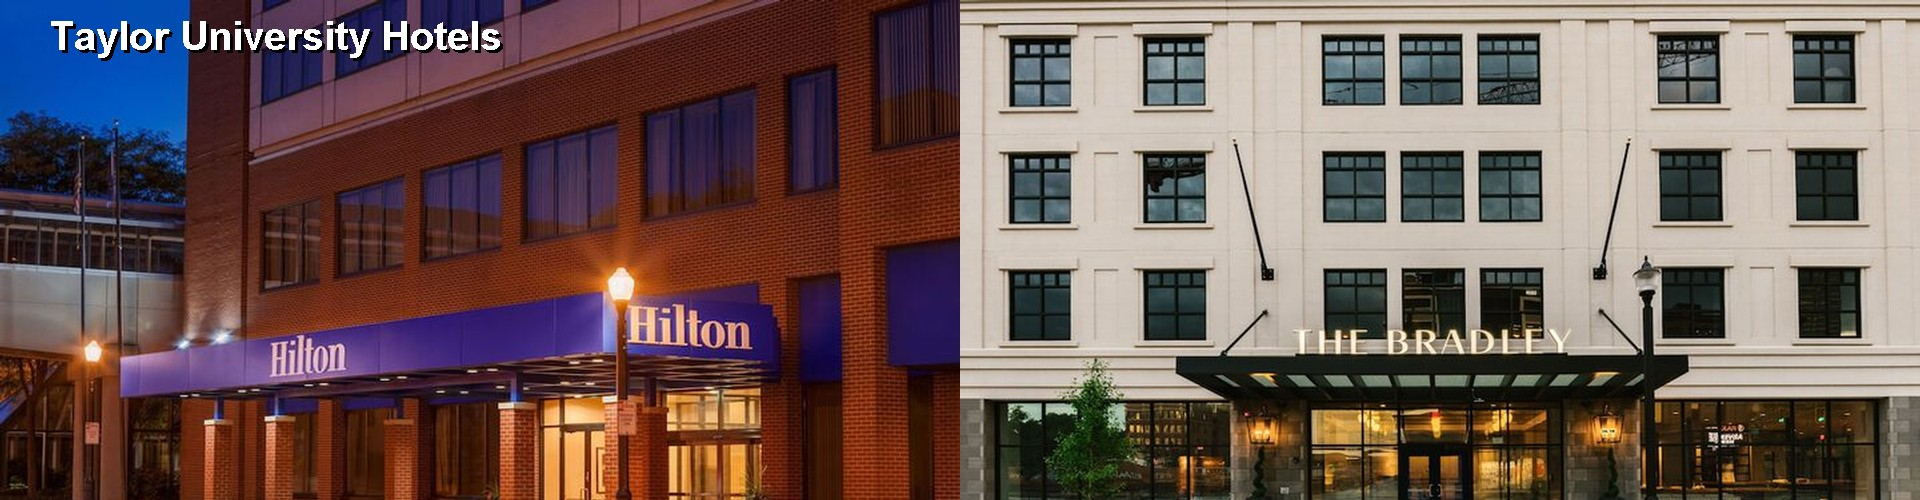 5 Best Hotels near Taylor University